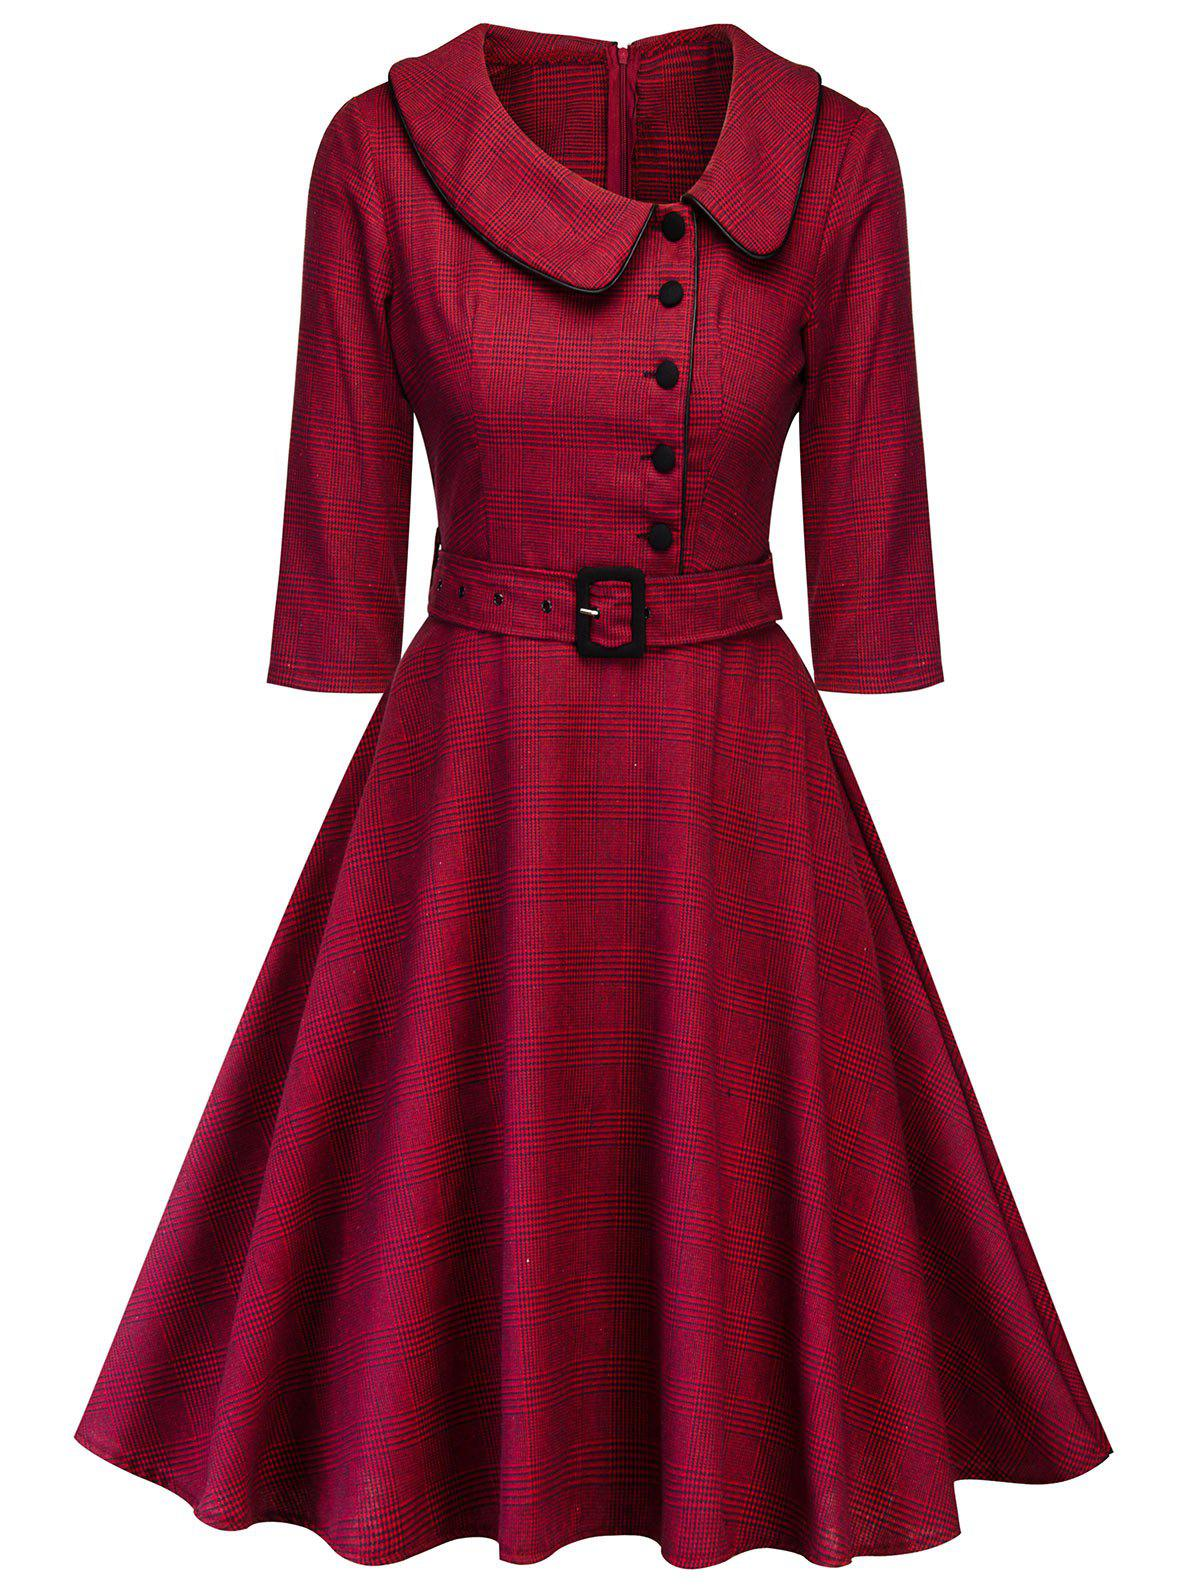 36% OFF] Plaid Peter Pan Collar Vintage Dress | Rosegal